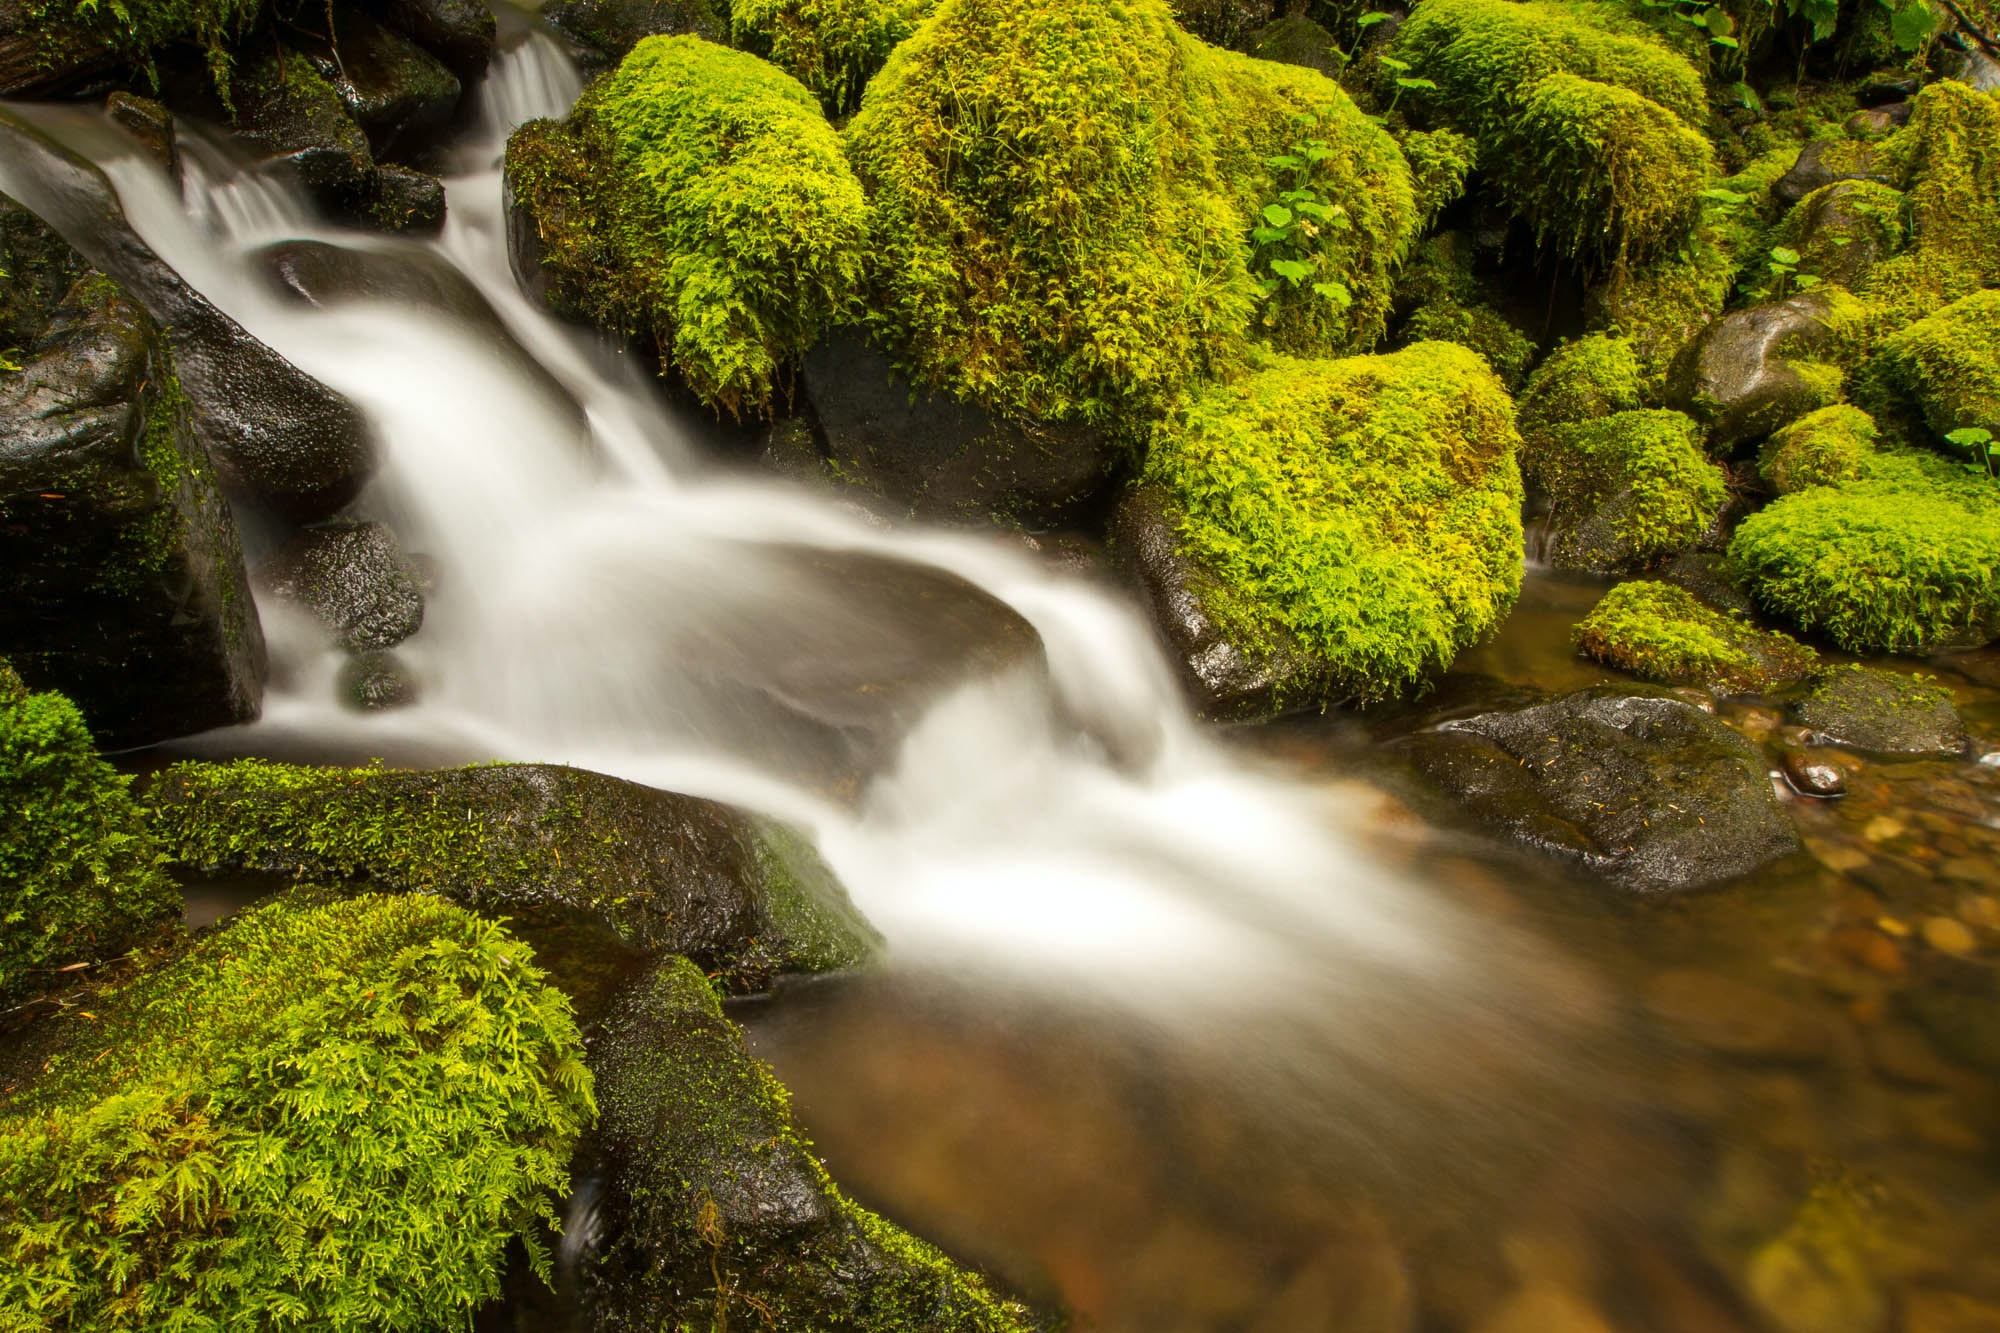 Misty waterfall rushes down mossy rocks